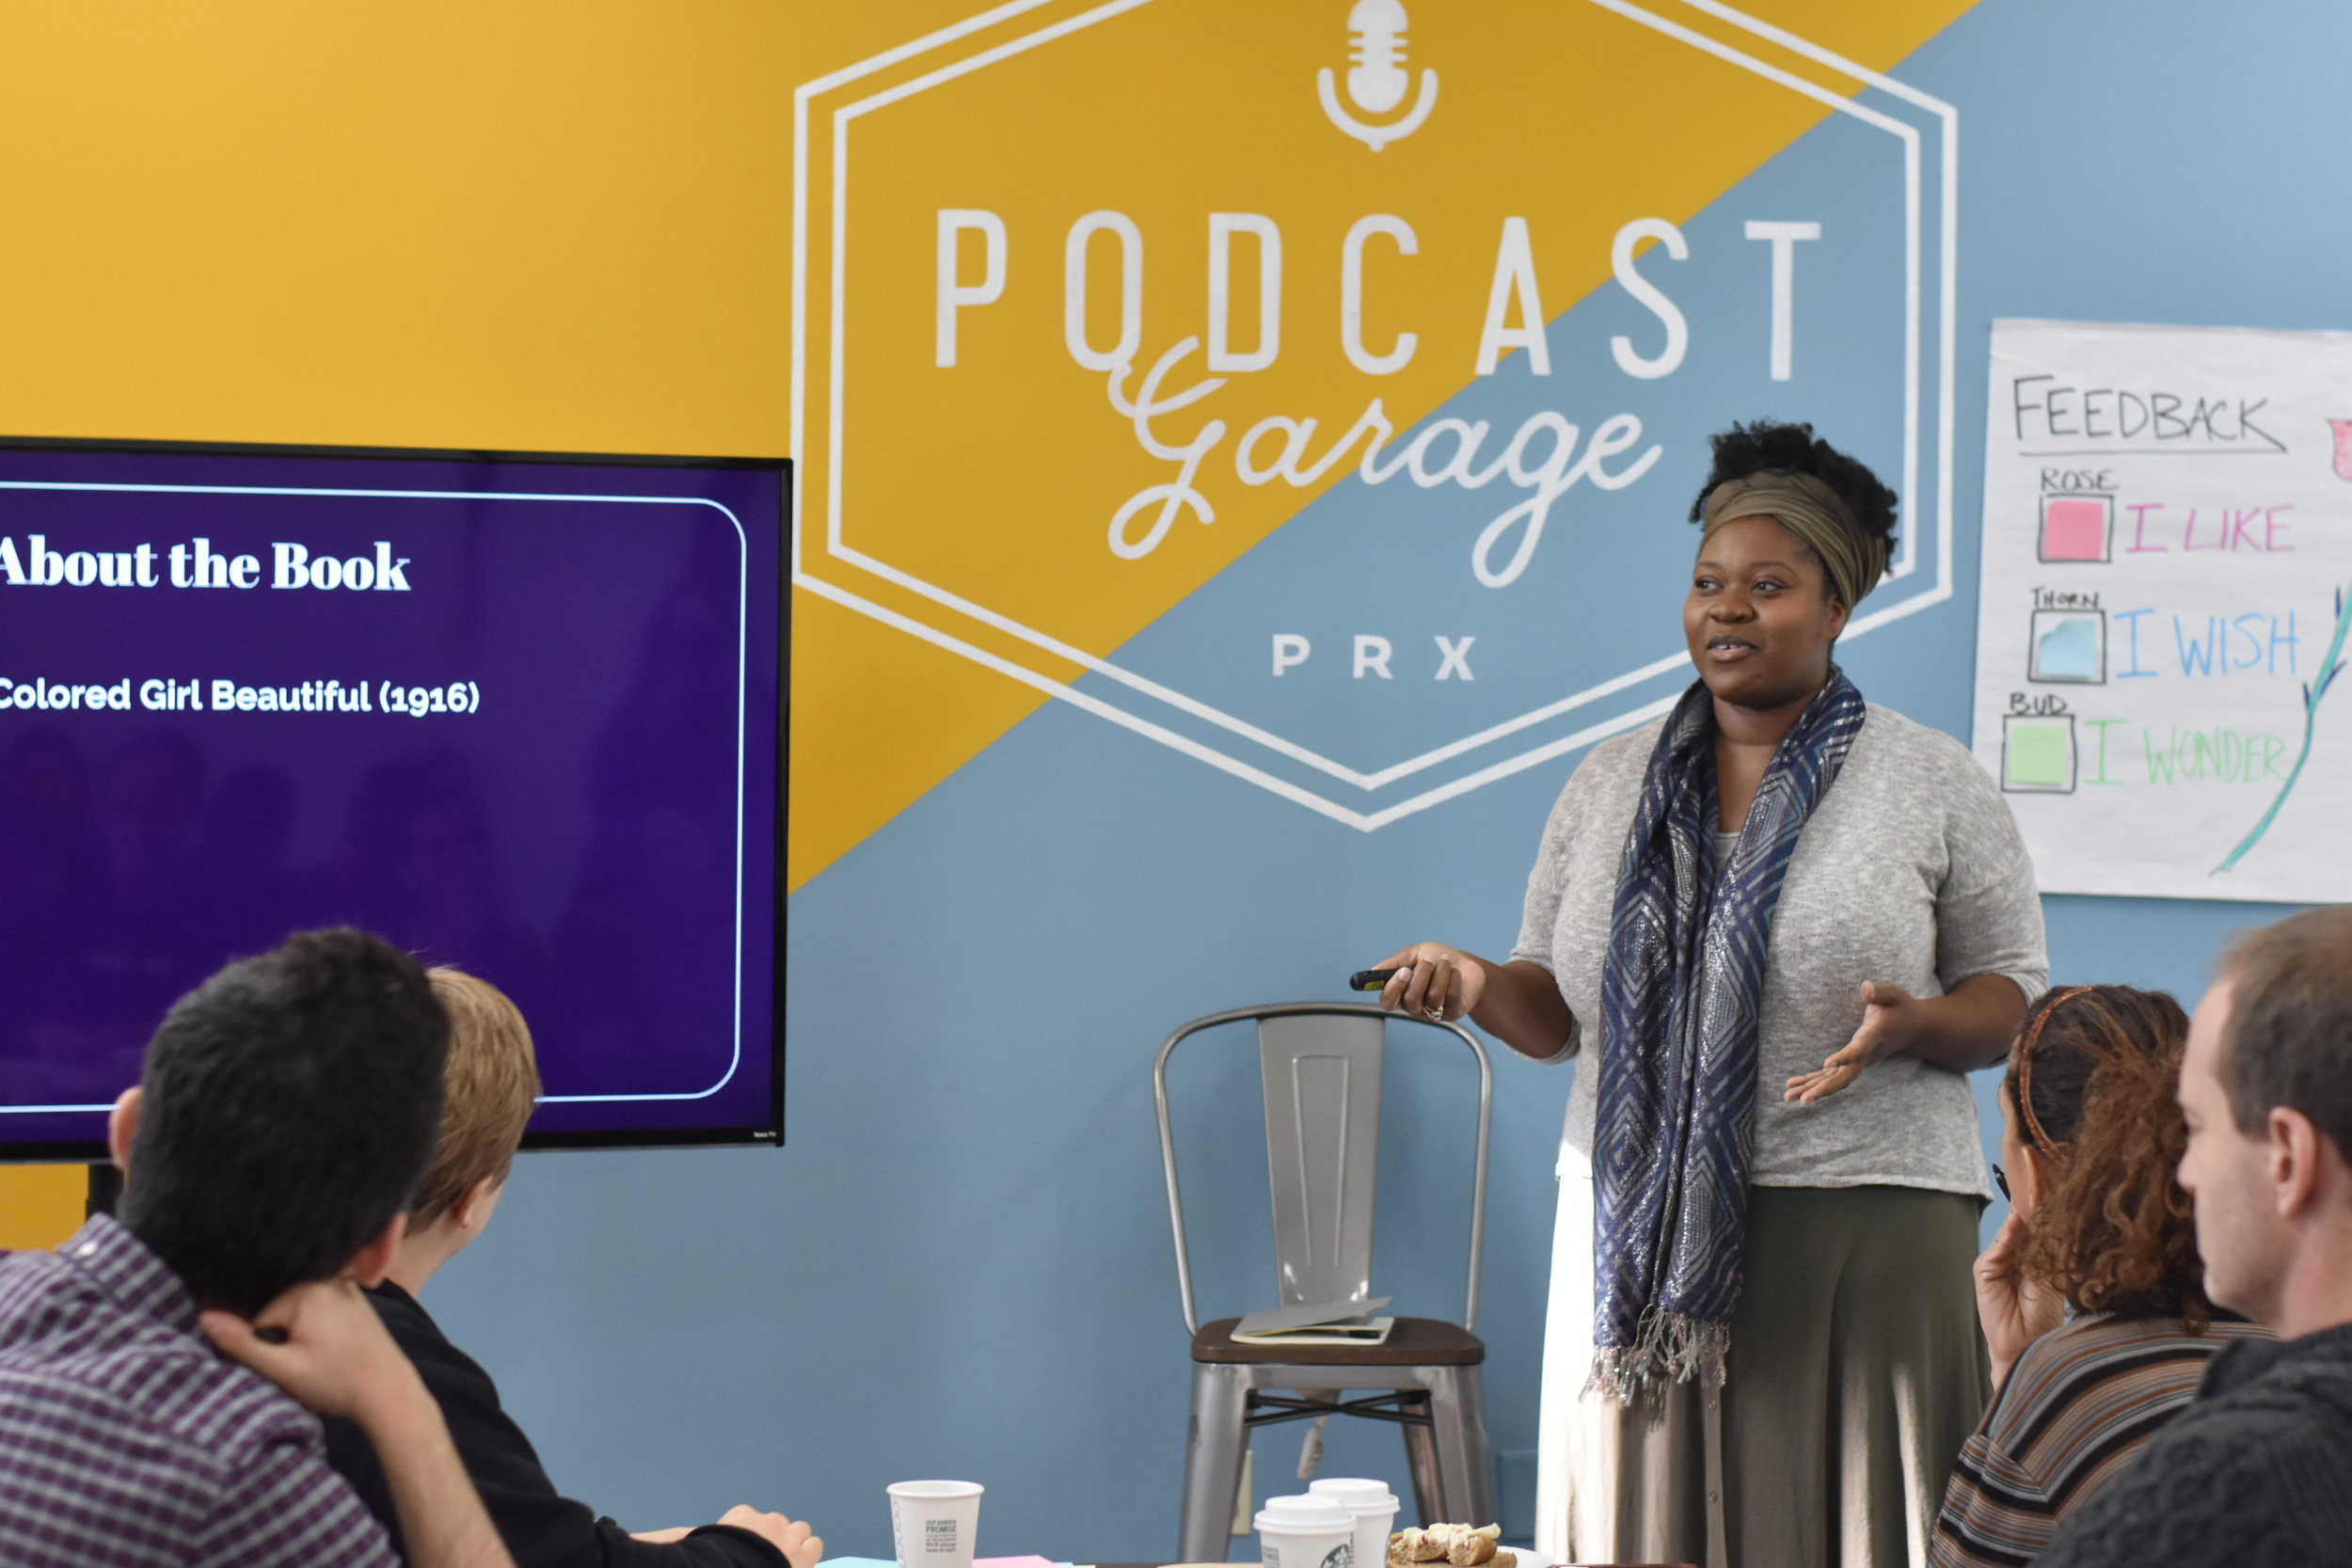 The Grio - GOOGLE AND PODCAST COMPANY, PRX REUNITE TO PROMOTE UNDERREPRESENTED VOICES IN STORYTELLINGAPR 23, 2019